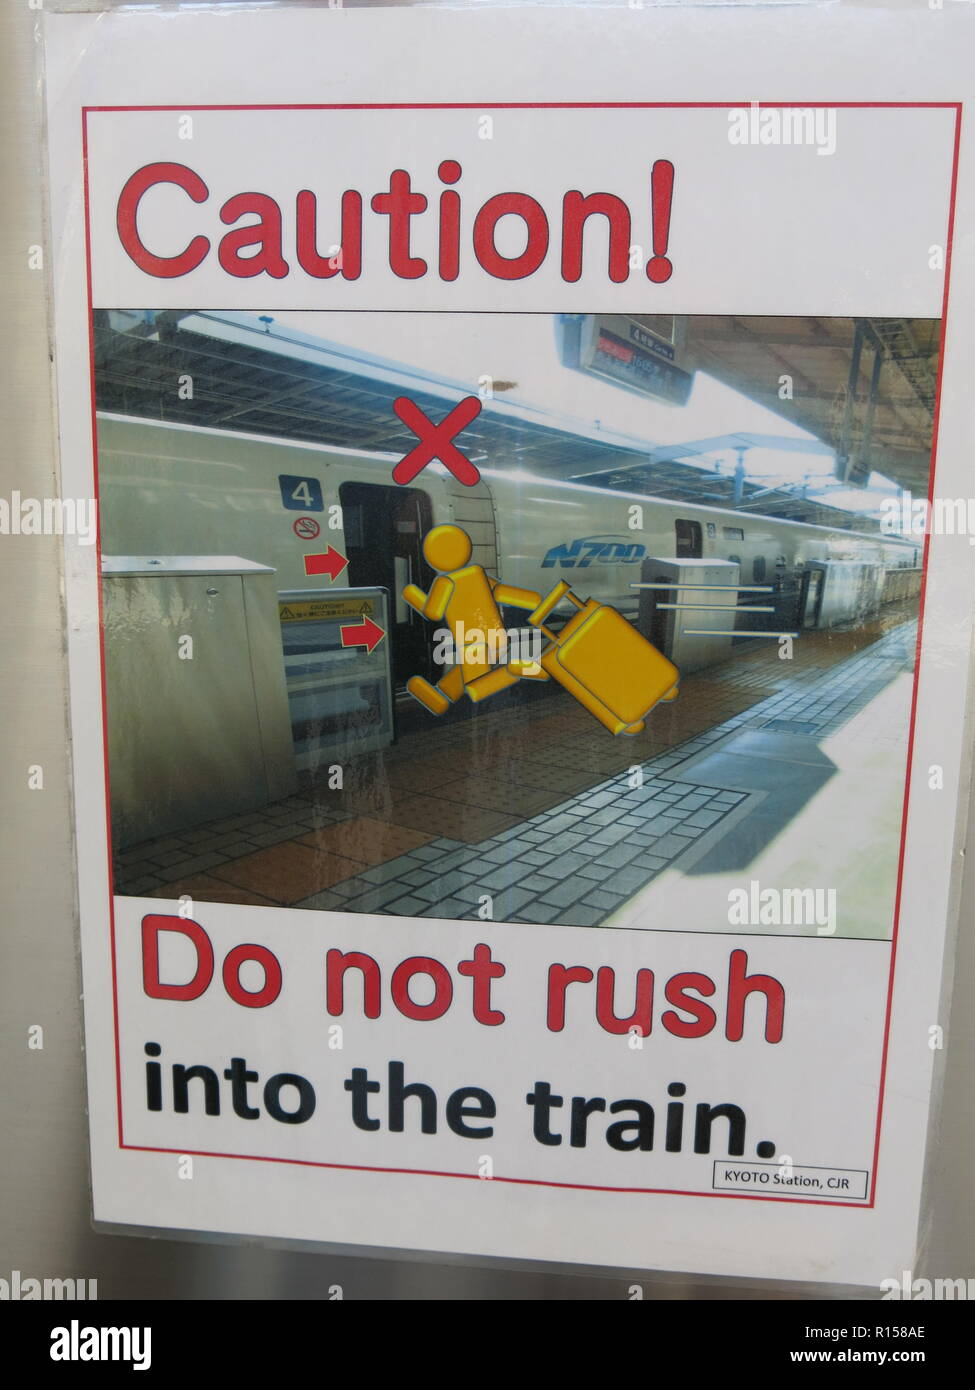 Photo of the poster at Kyoto railway station for the Japanese Bullet train: 'Caution! Do not rush into the train' - Stock Image